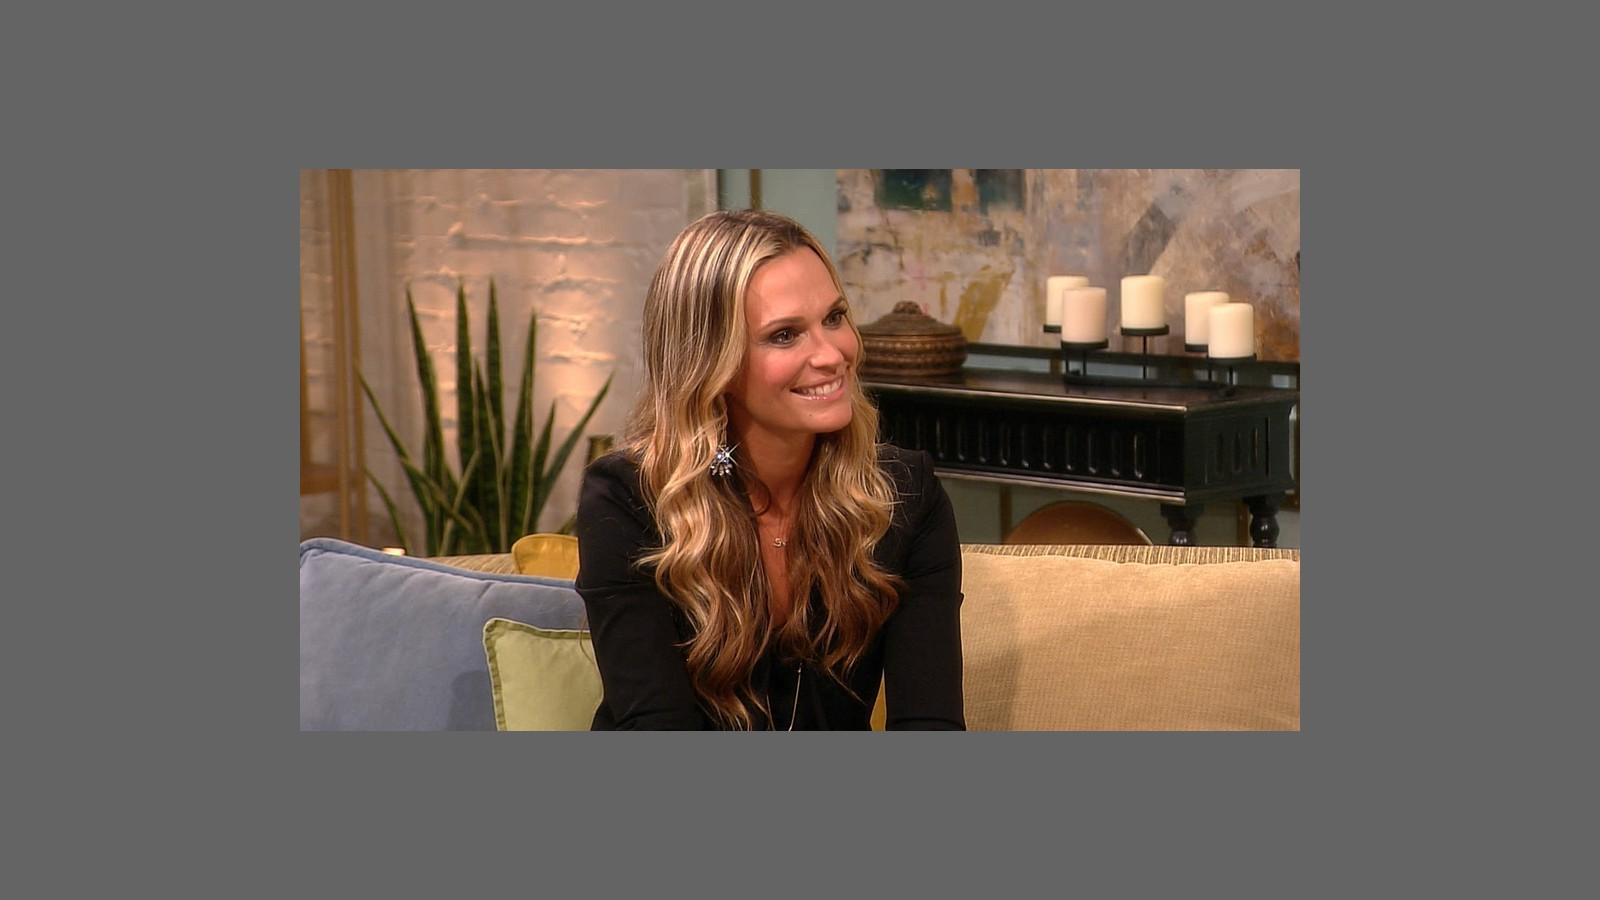 Molly Sims shares all the fun details about her big wedding day to husband